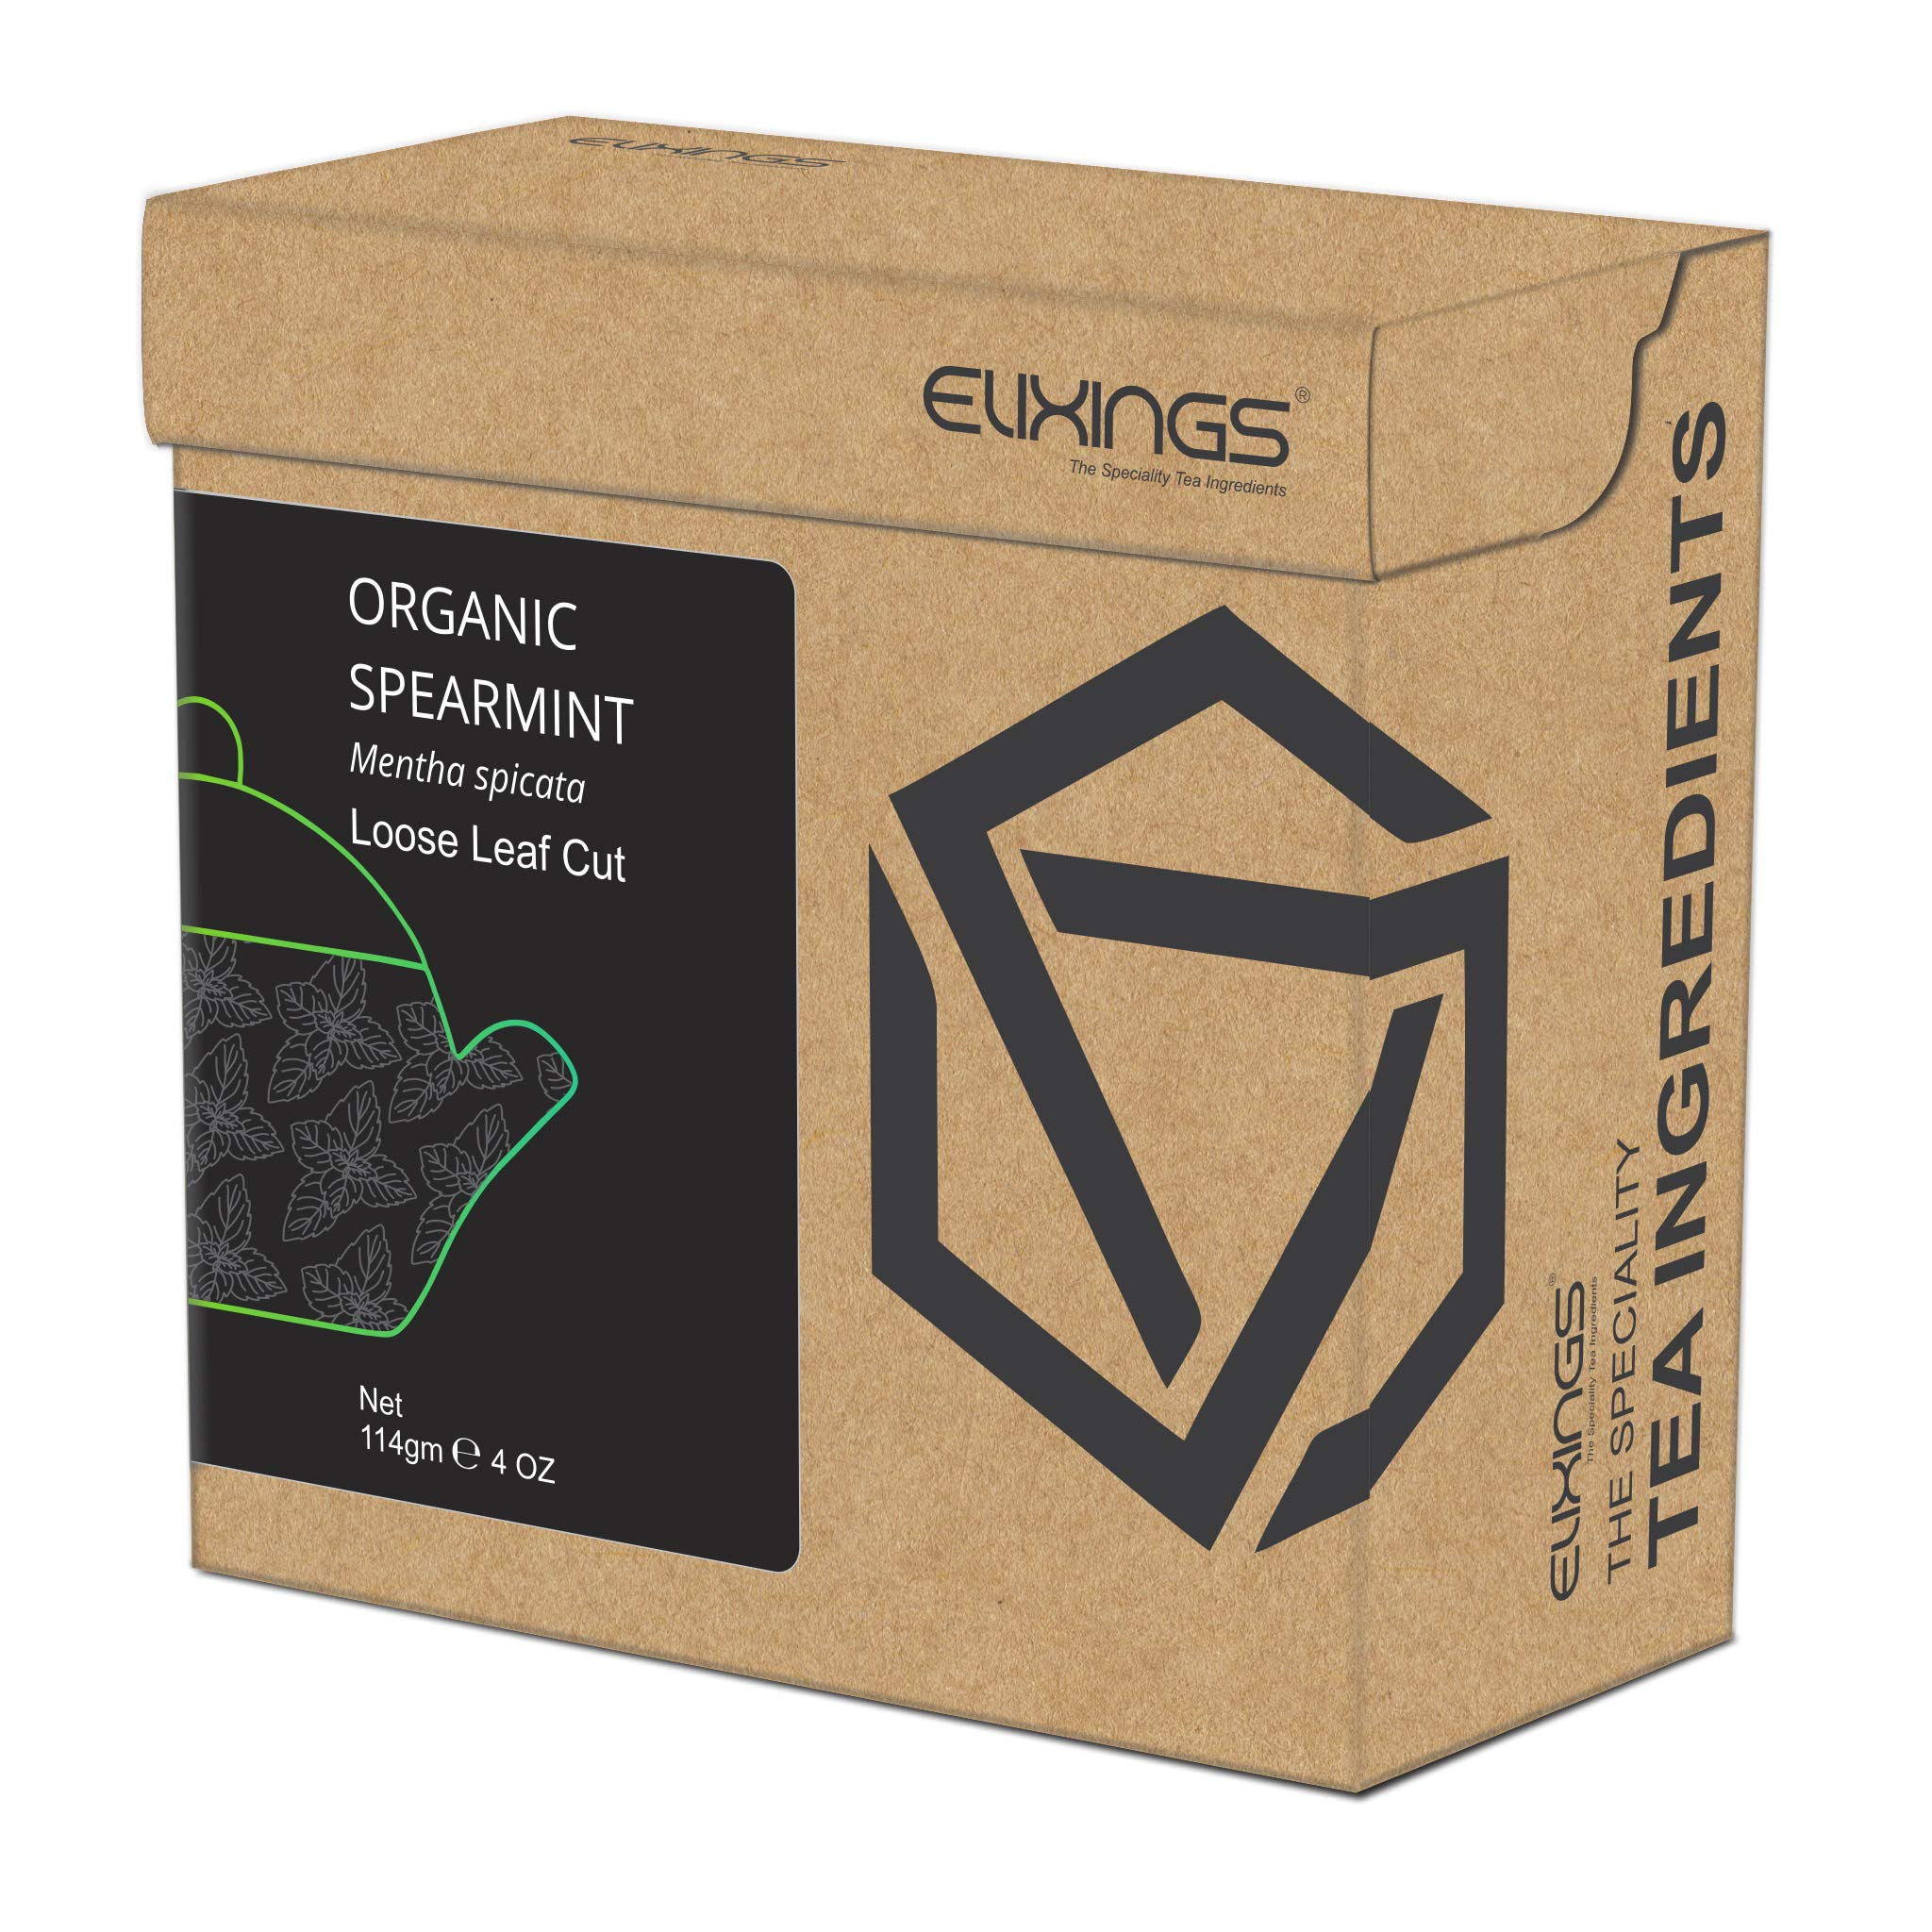 Elixings Organic Spearmint Leaves Loose Leaf Cut 114gm (4 OZ) Mentha spicata, The Speciality Tea Ingredients